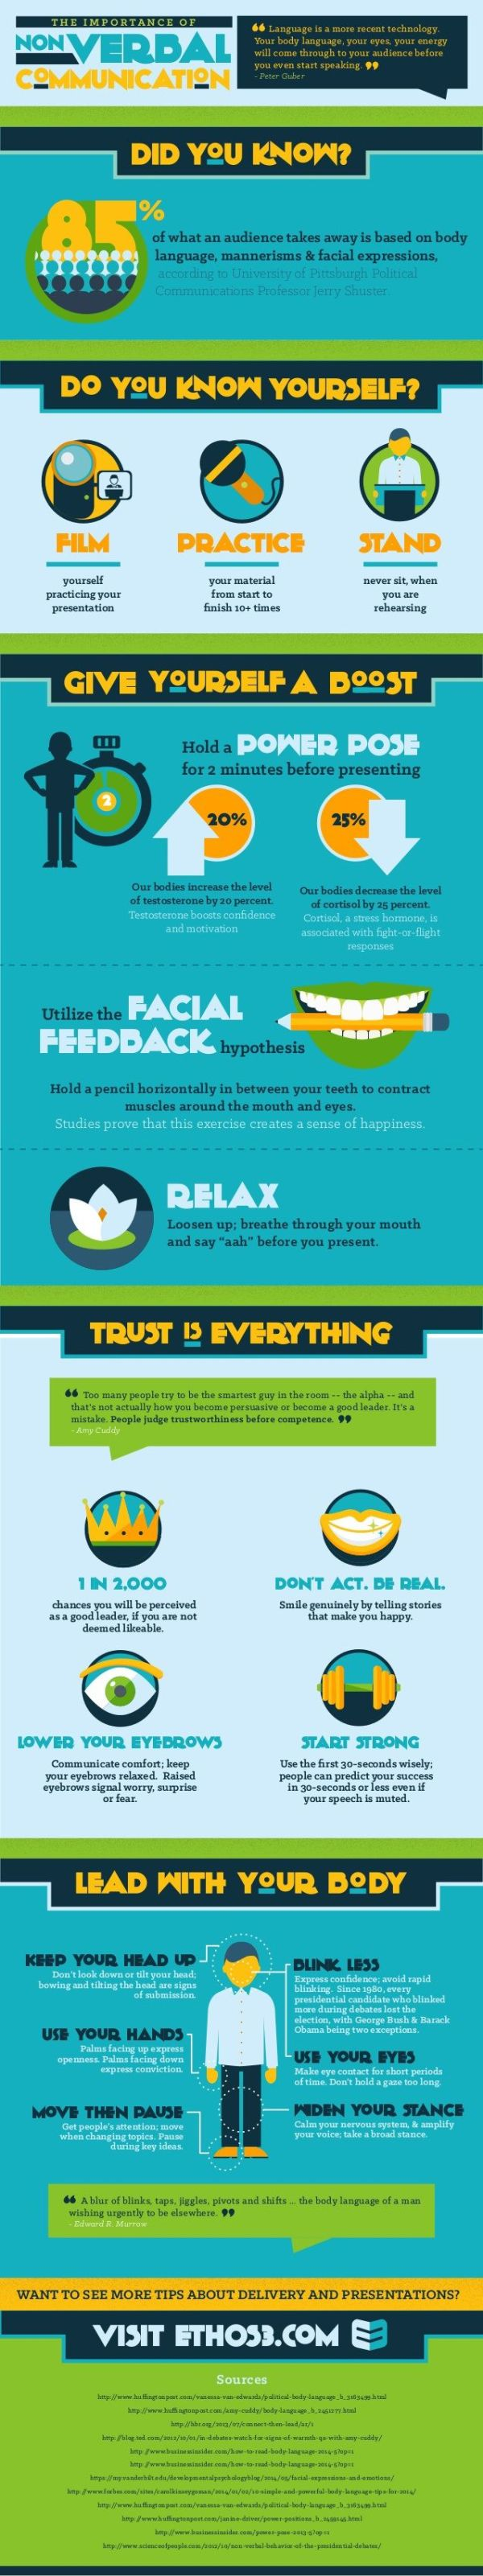 Non Verbal Communication Ethos3. What Does Your Non-Verbal Communication Say About You? [Infographic]